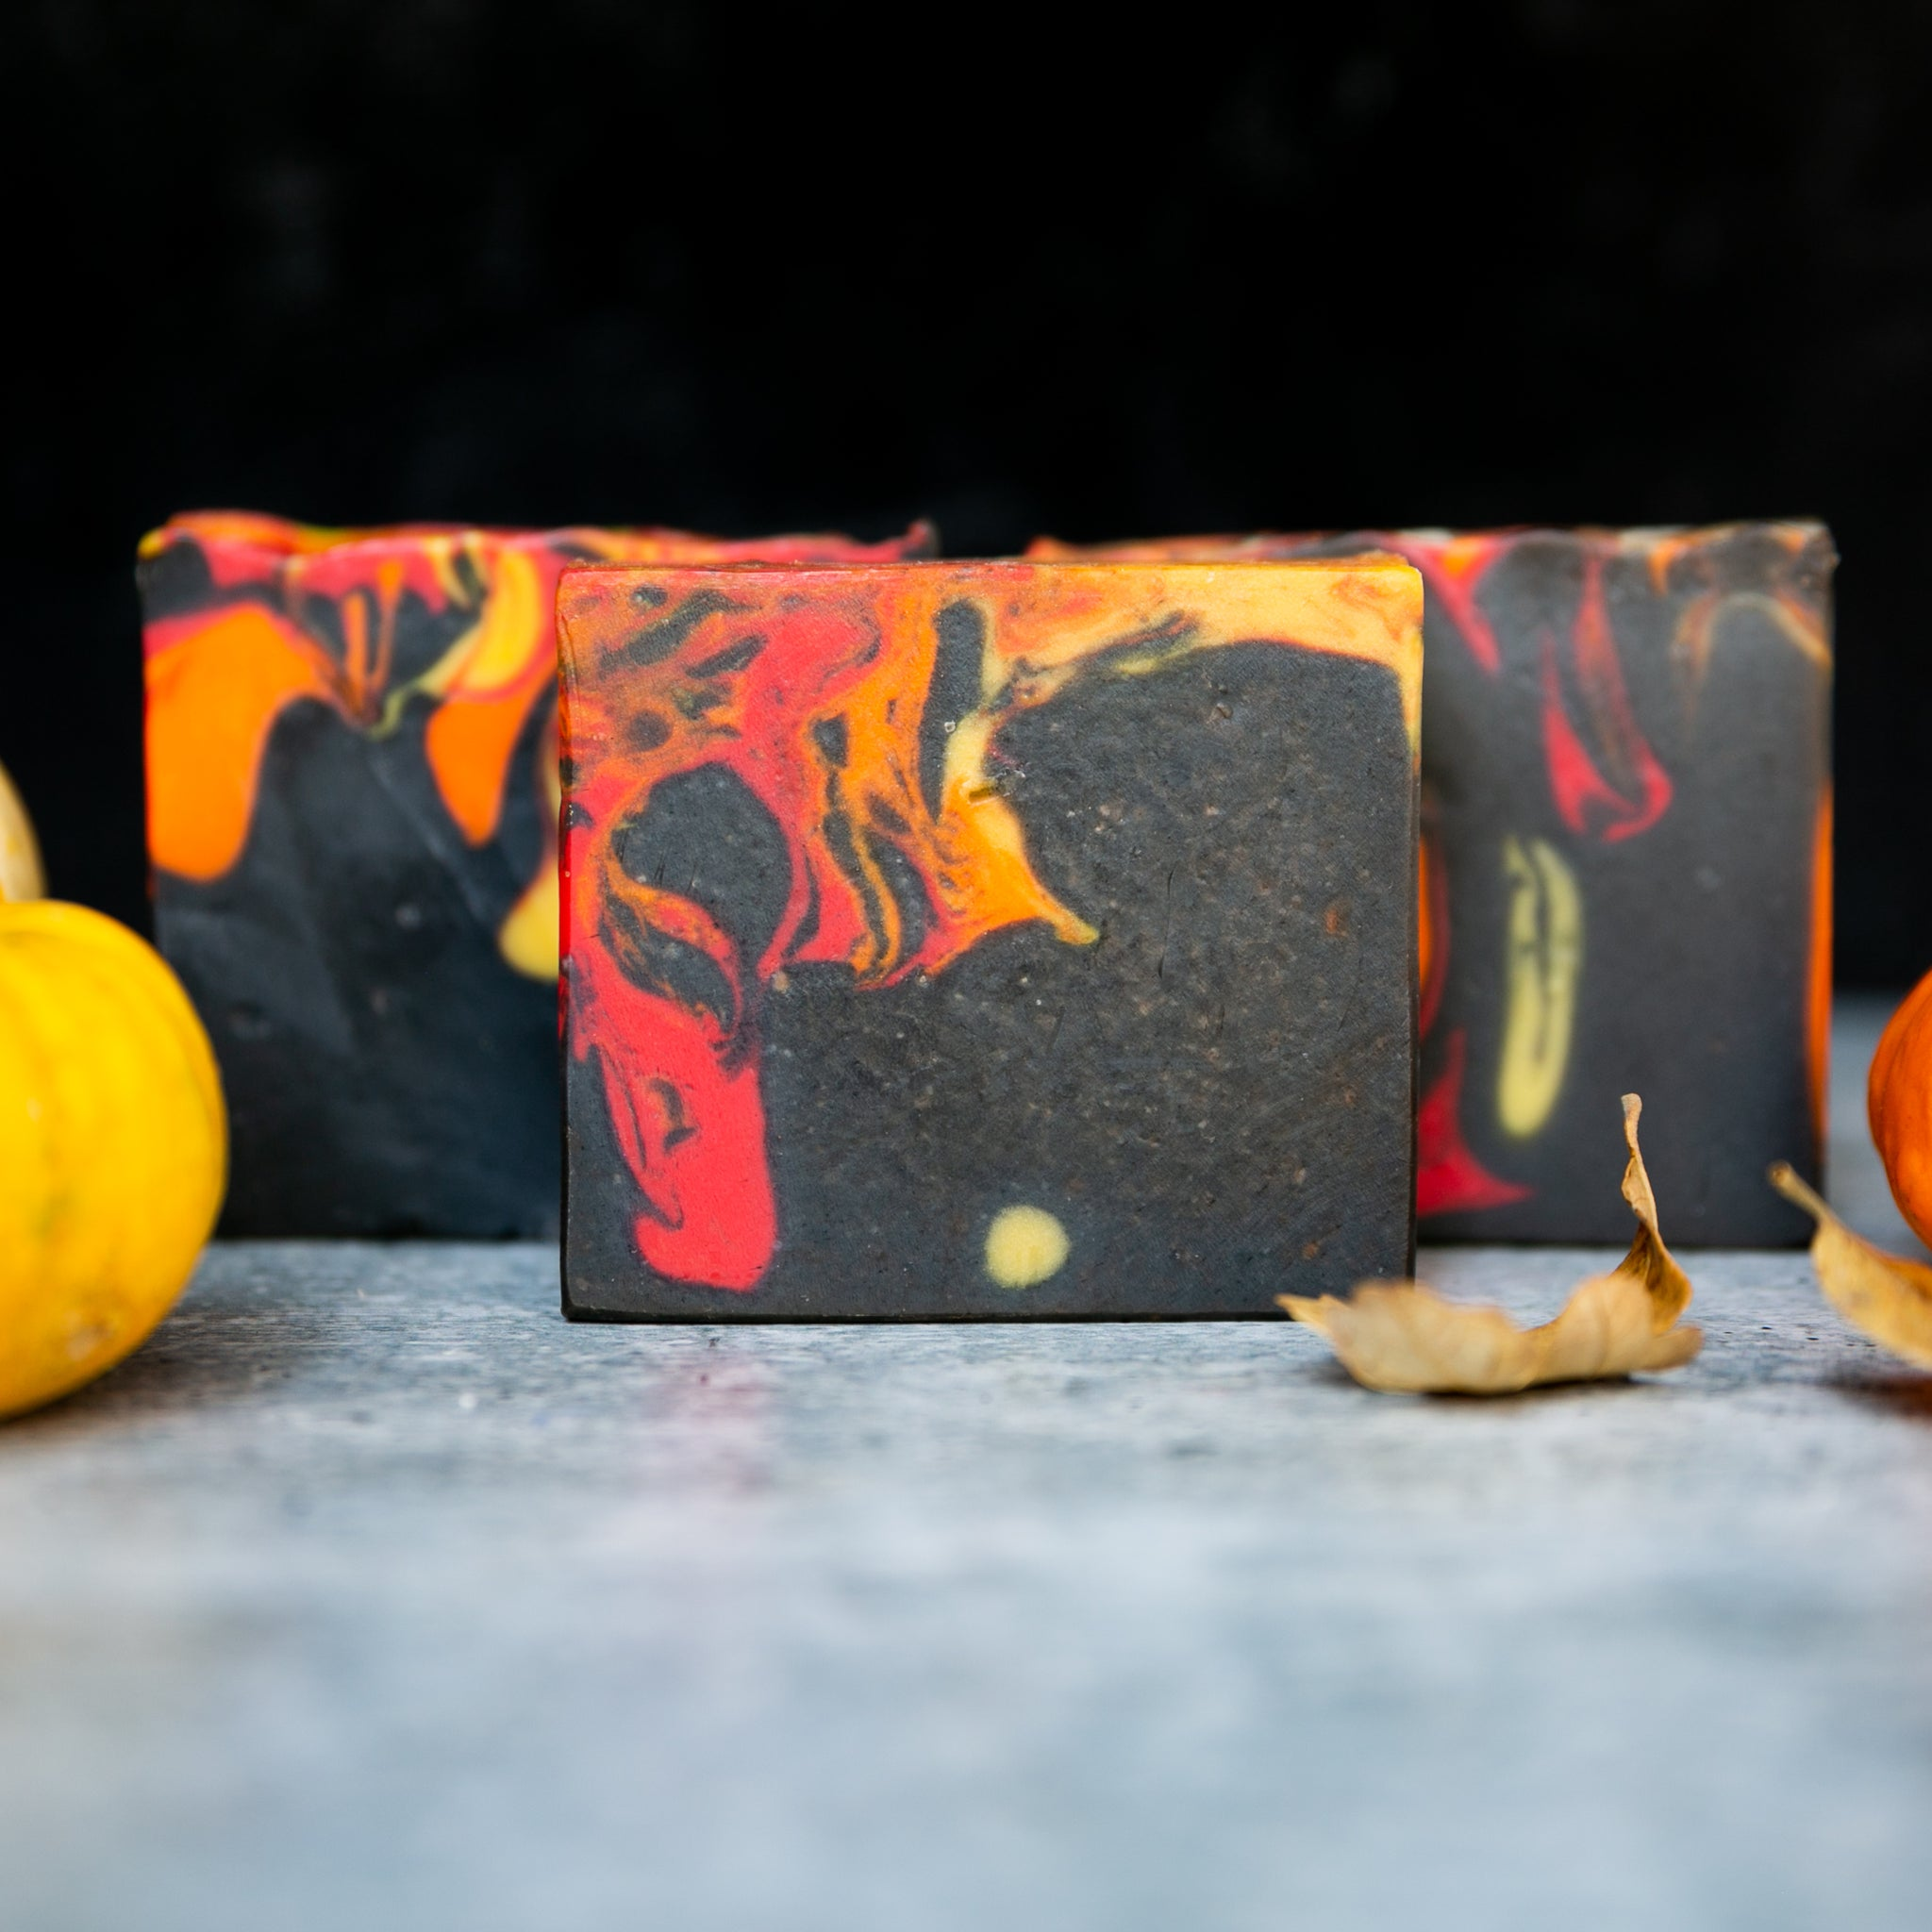 Bonfire Nights Artisan Soap